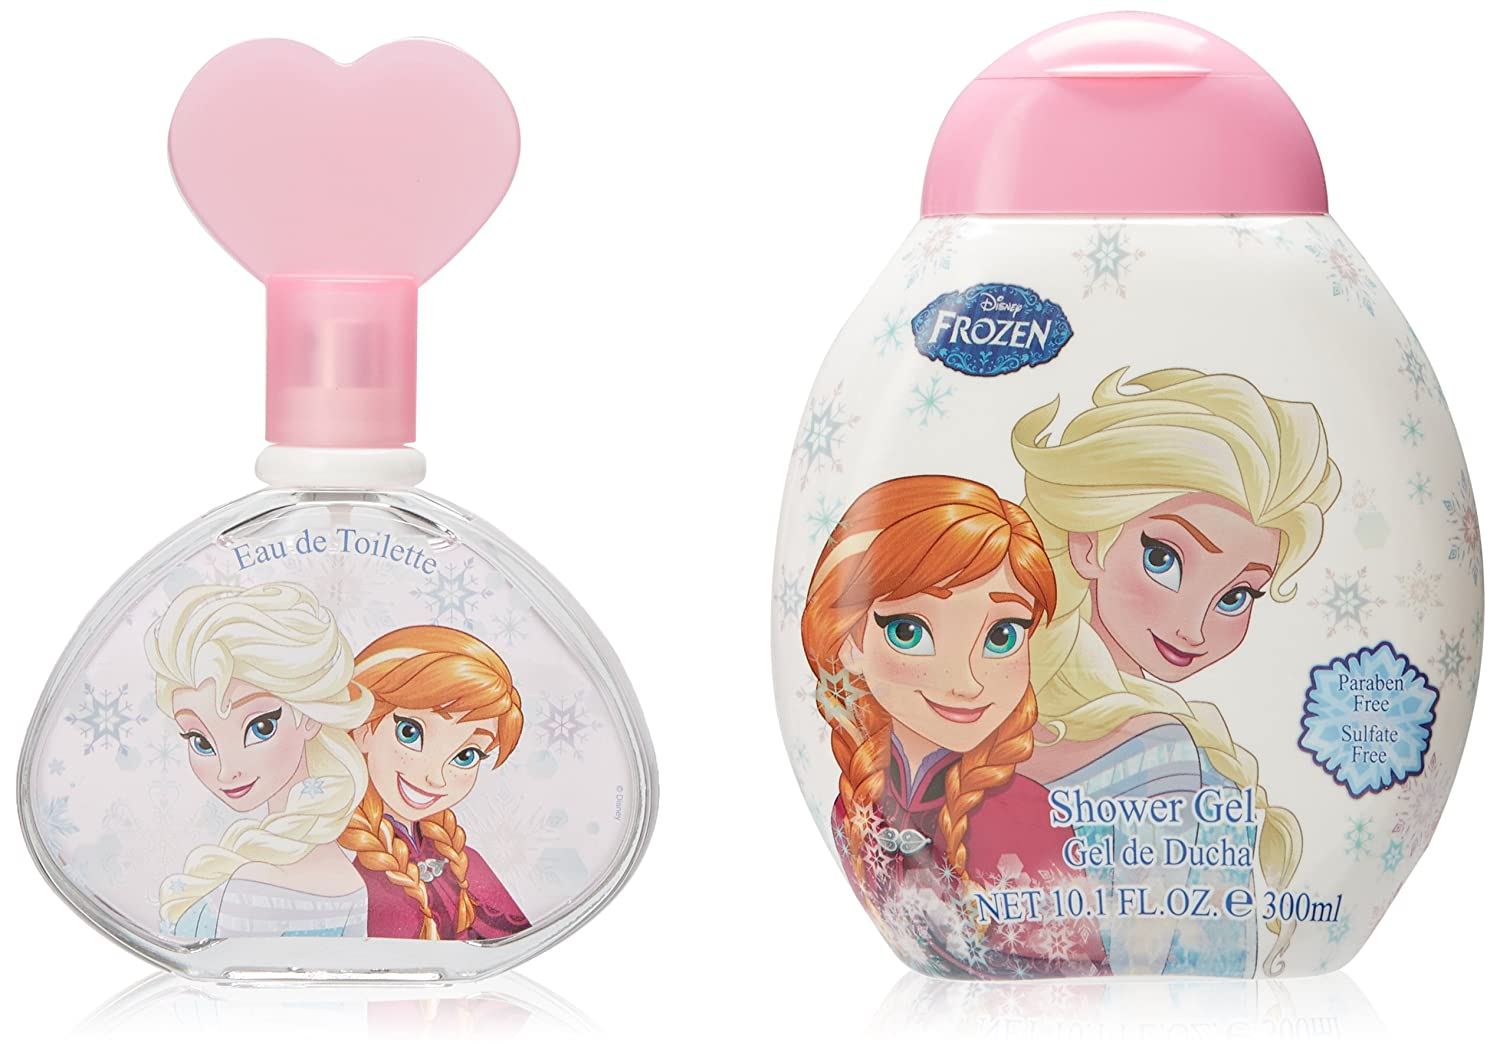 Disney Frozen for Kids 2 Piece Gift Set with Edt Spray and Shower Gel PerfumeWorldWide Inc. Drop Ship 6527.0